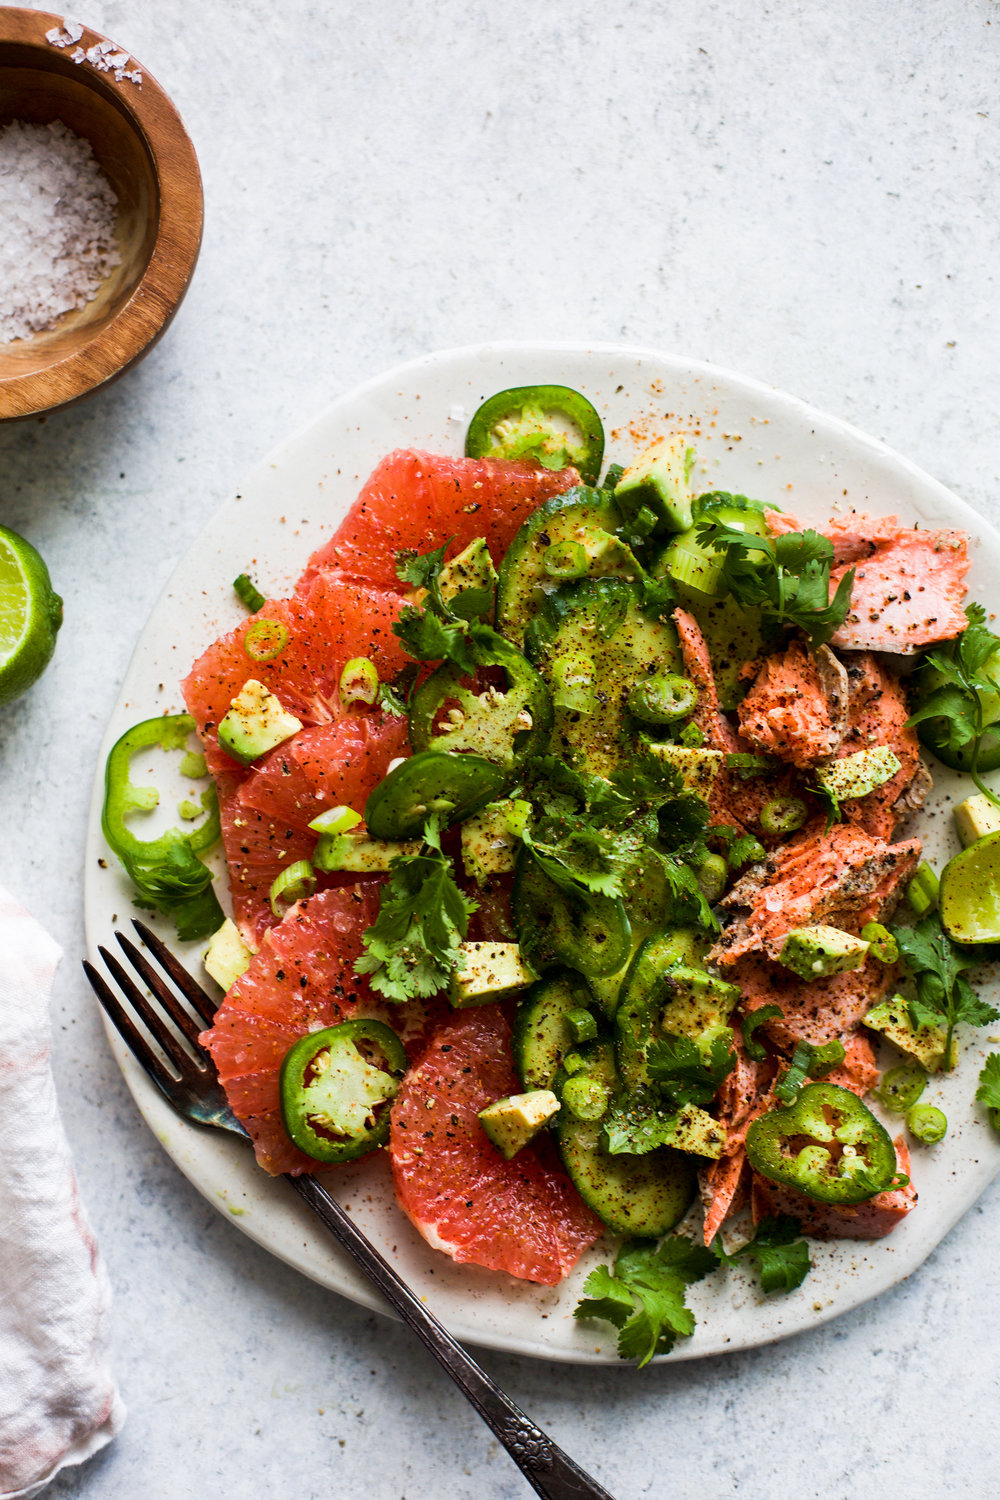 Chili Grapefruit Salmon Salad: My Diary of Us